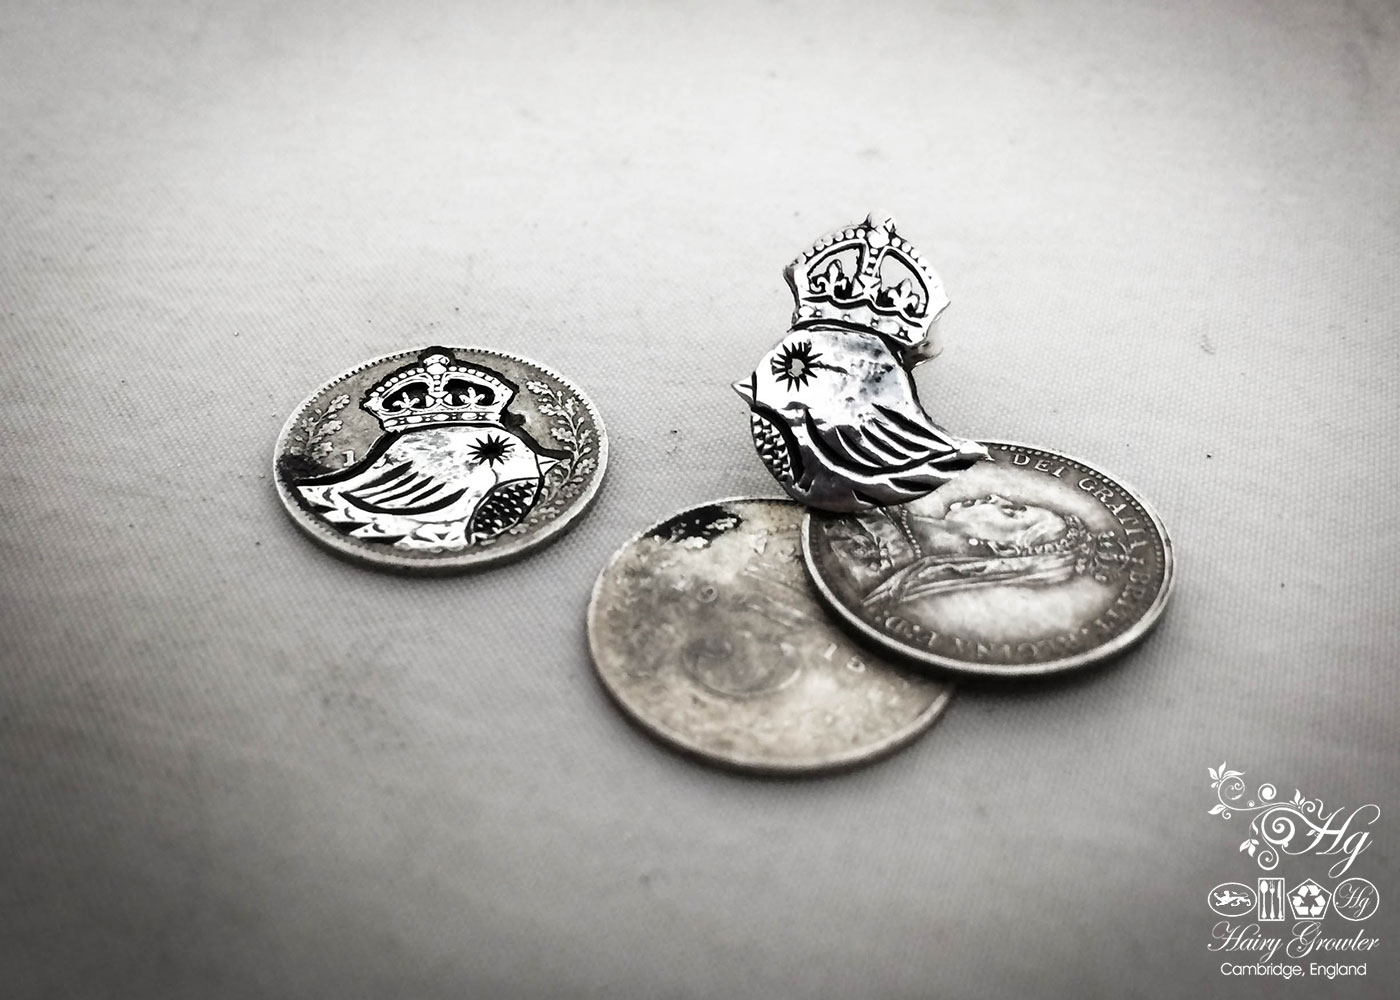 Teeny weeny Kingsy Queeny bird bracelet recycled silver threepence coins